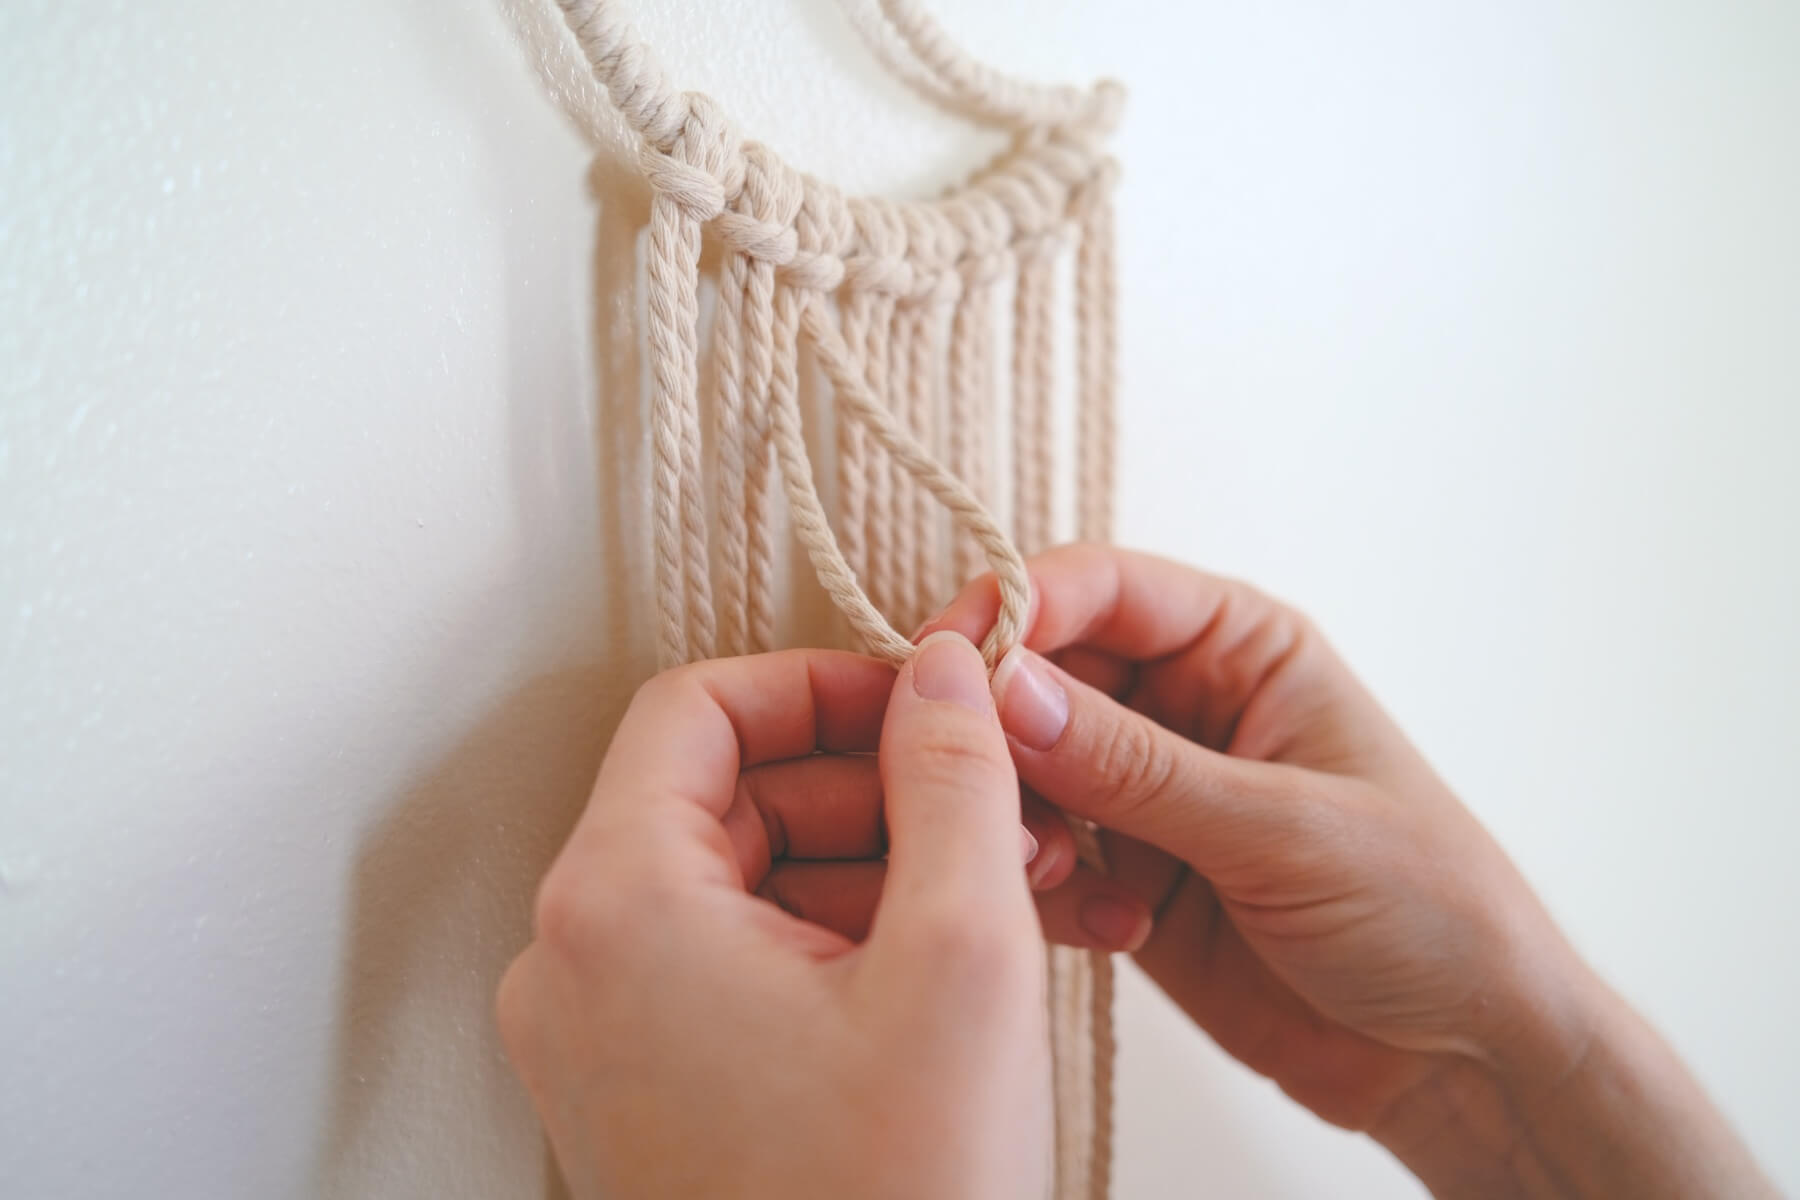 starting a double half hitch knot macrame tutorial